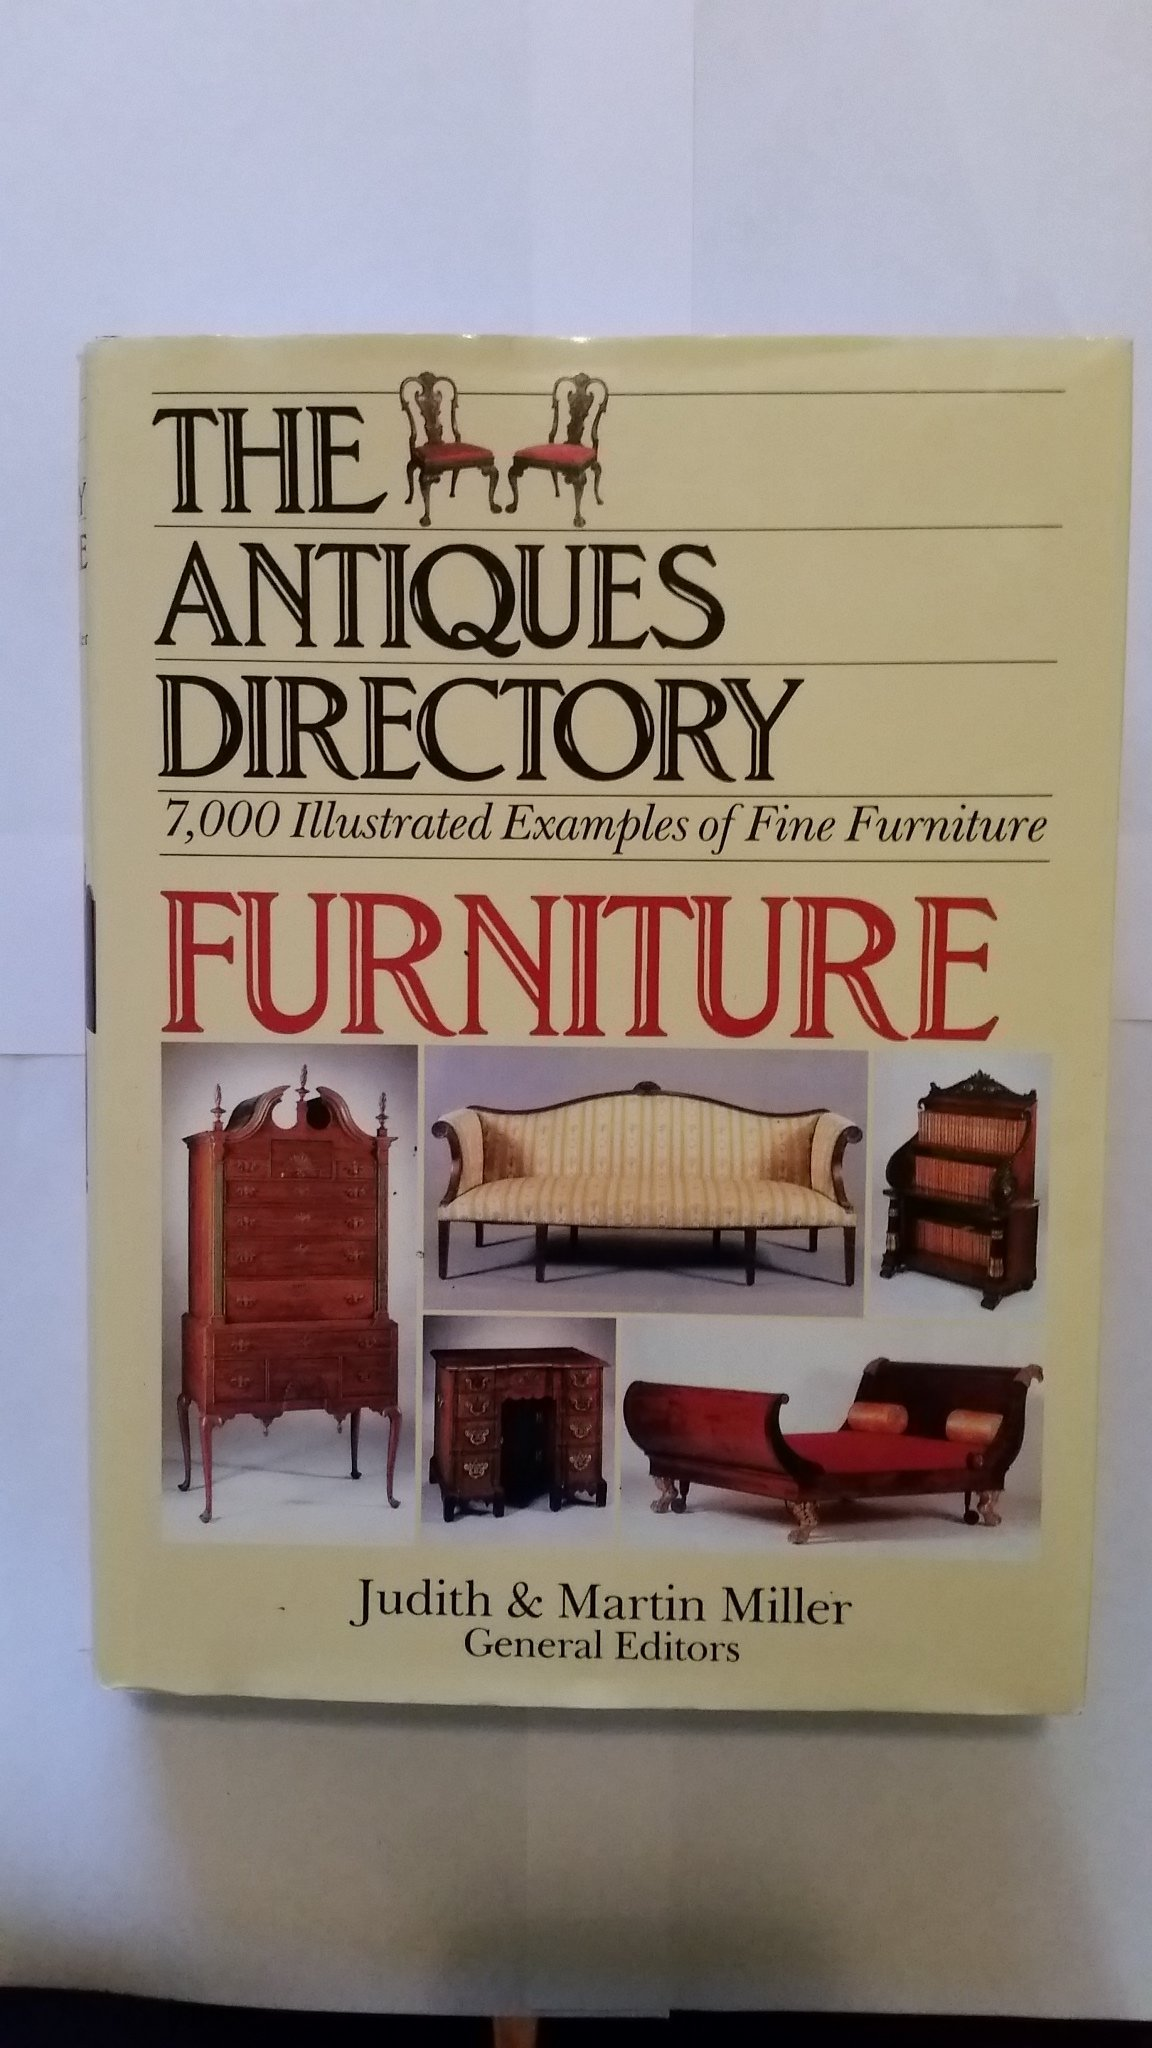 The Antiques Directory: Furniture: Judith Miller, Martin Miller:  9780517141182: Amazon.com: Books - The Antiques Directory: Furniture: Judith Miller, Martin Miller